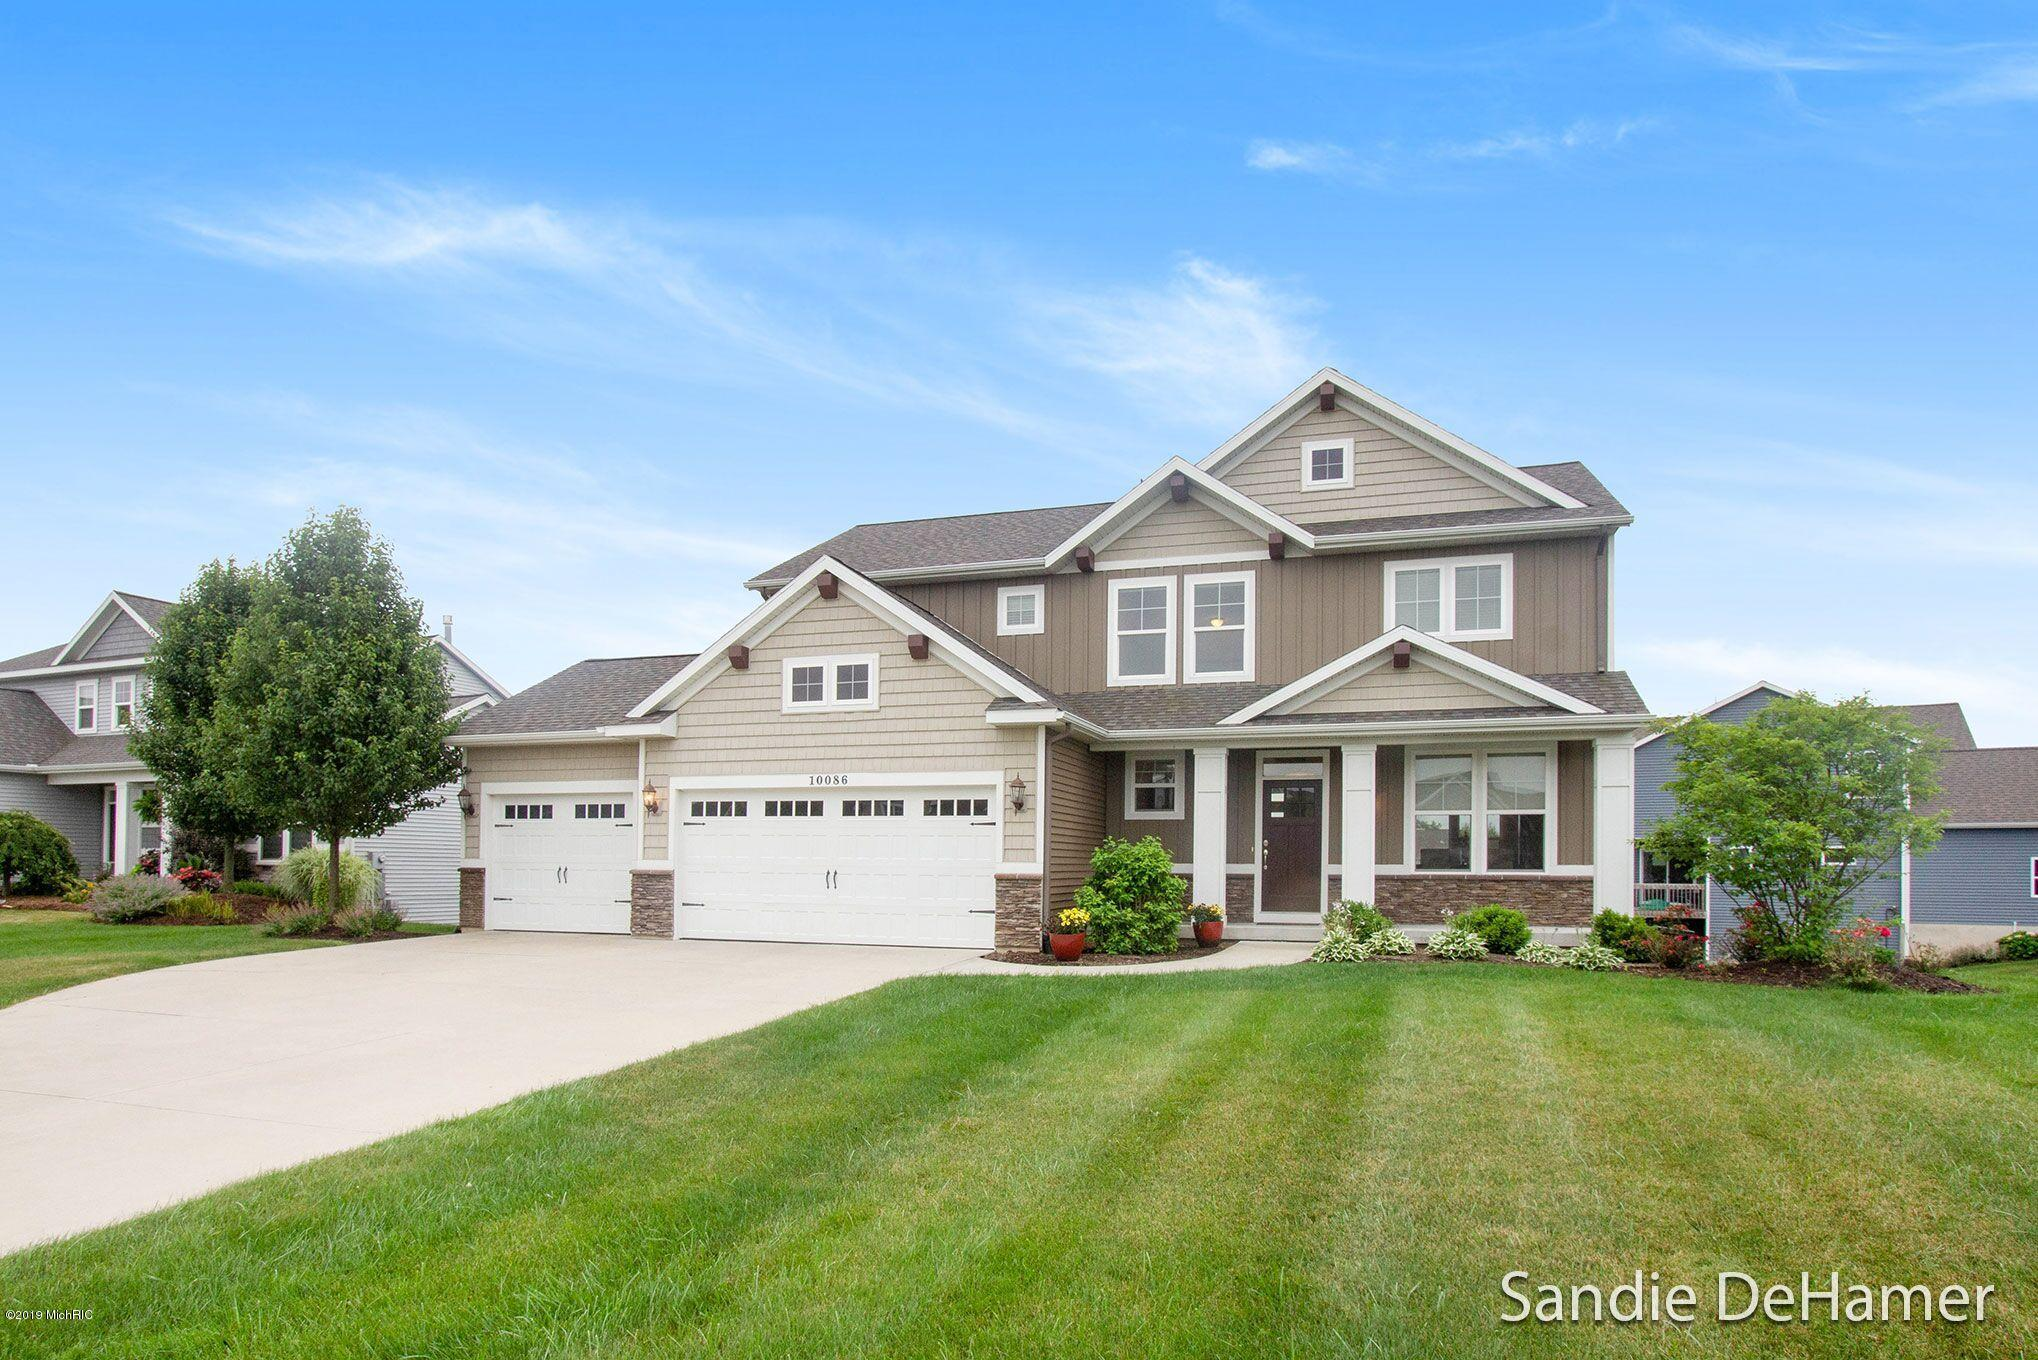 10086 SWITCHGRASS Lane, Zeeland, MI 49464